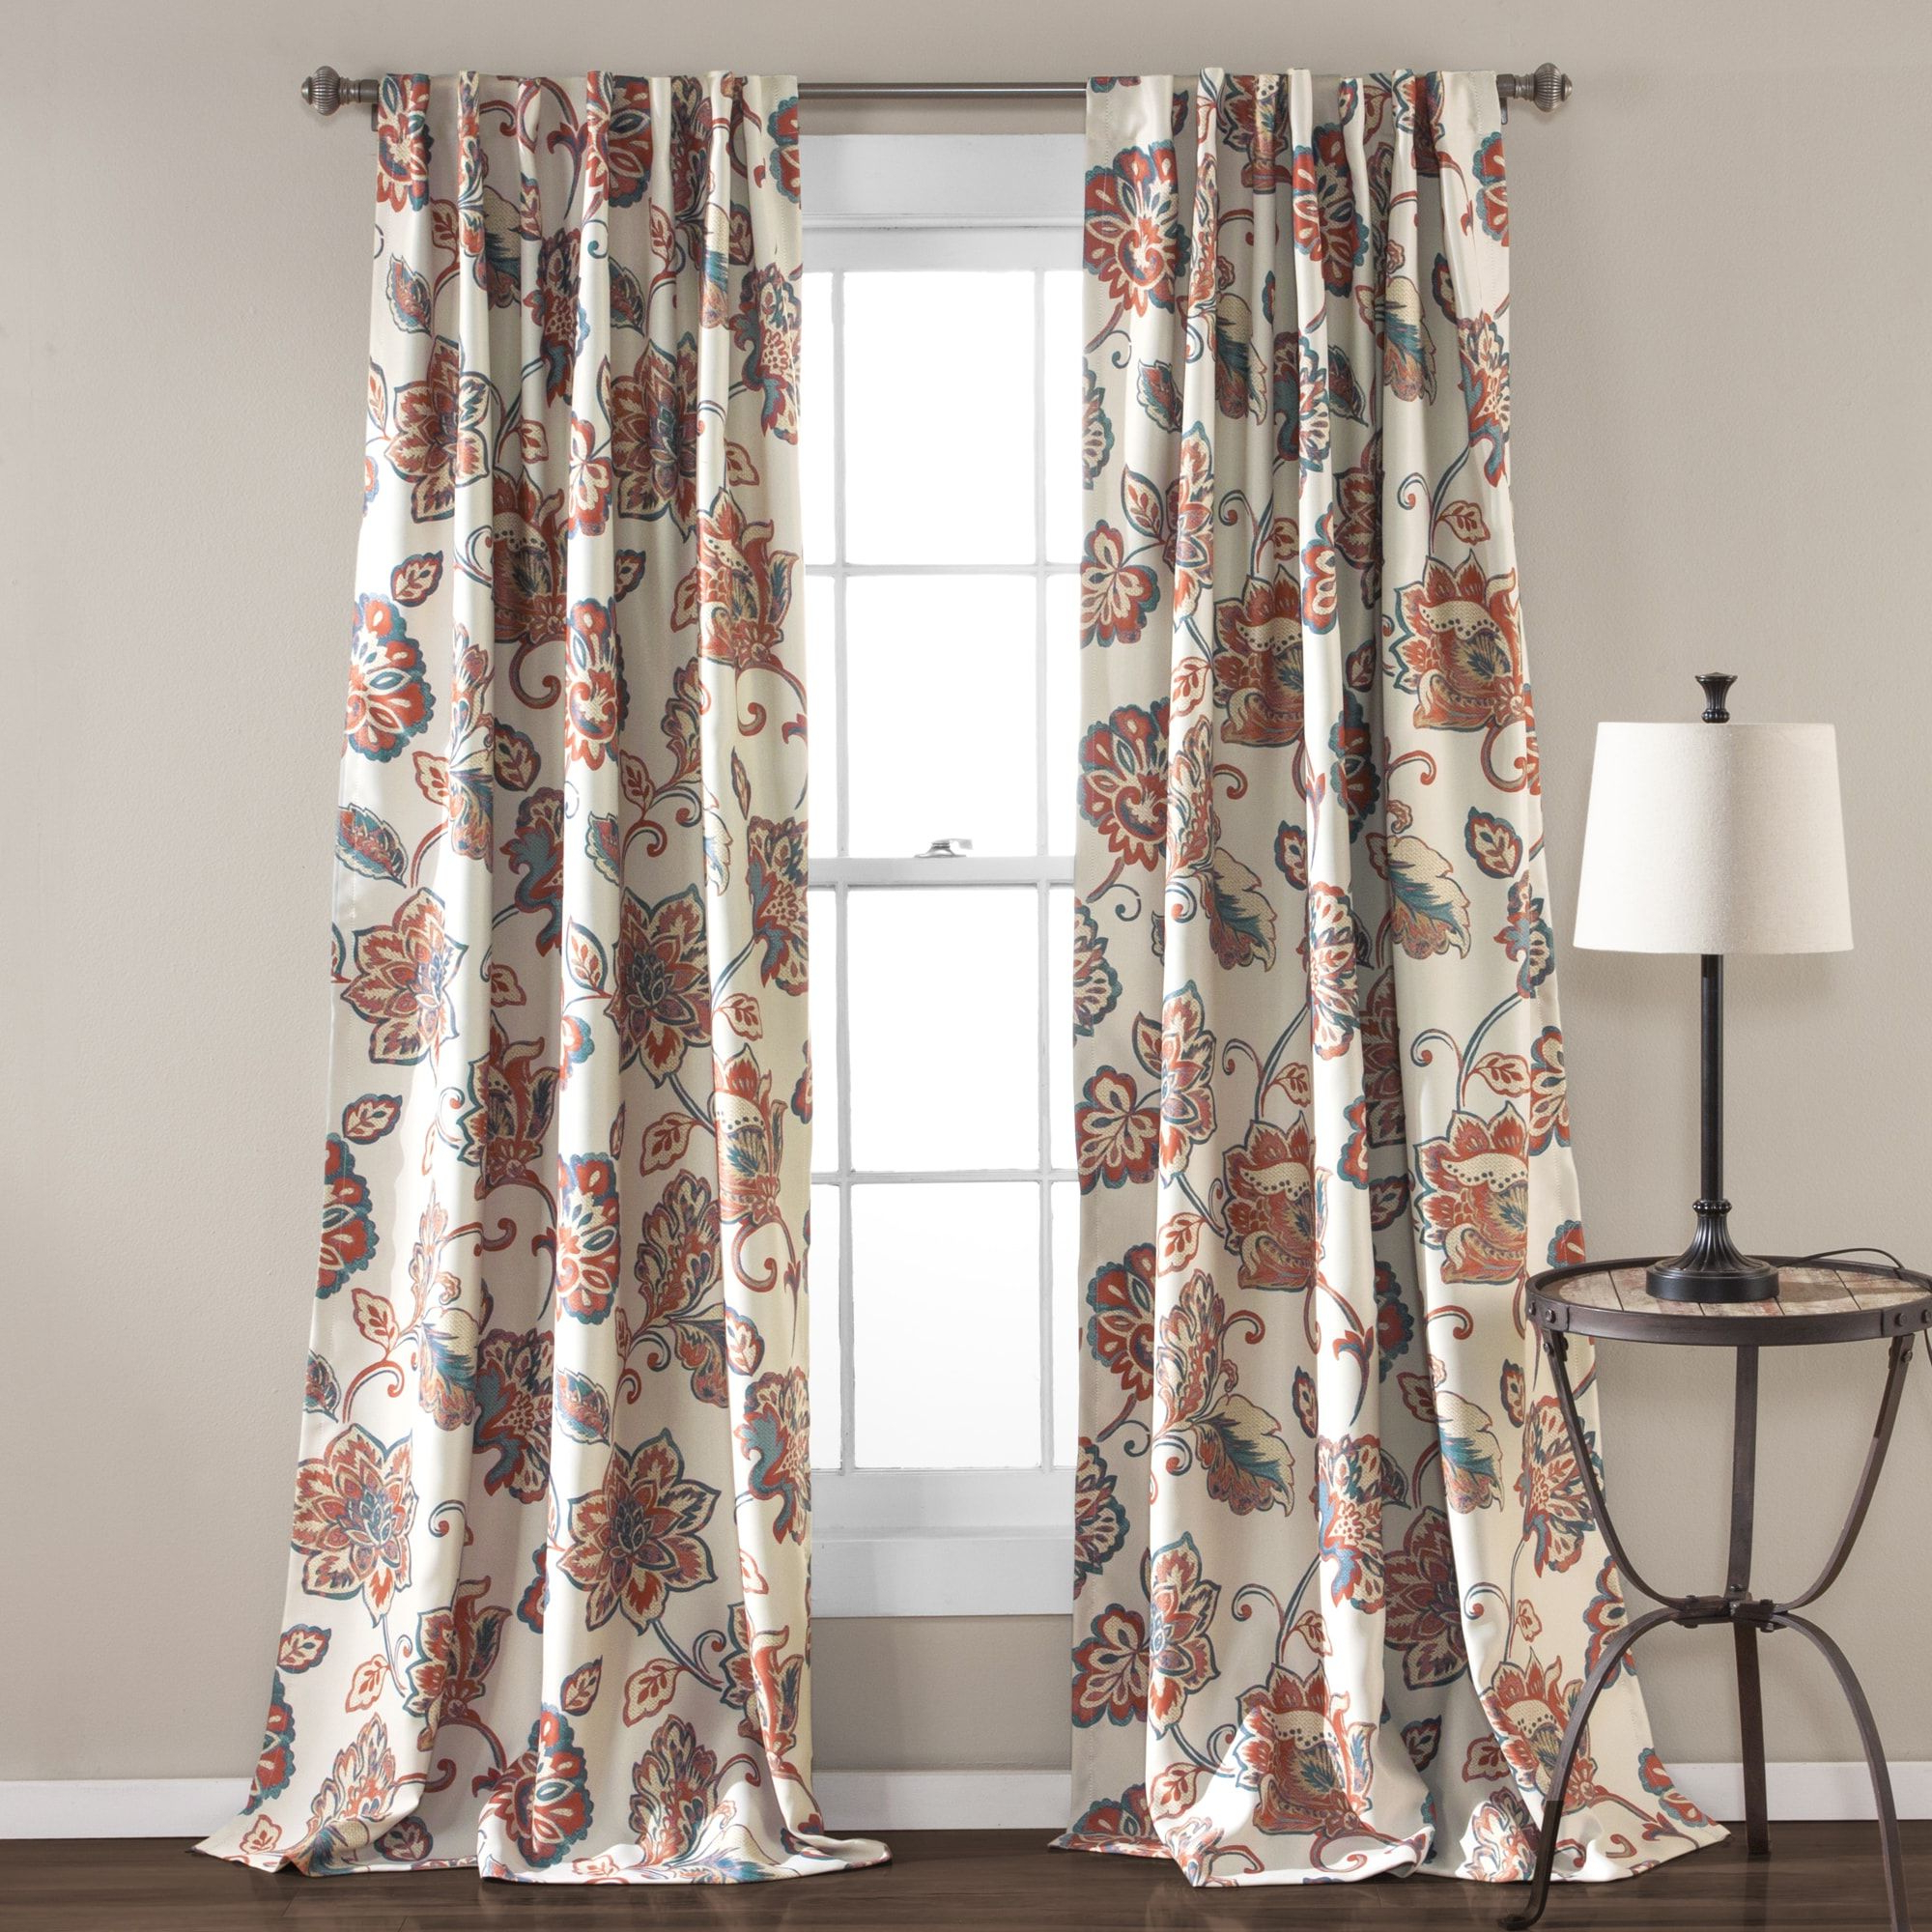 Gray Barn Dogwood Floral Curtain Panel Pairs Regarding Most Current The Gray Barn Dogwood Floral Curtain Panel Pair (aster (View 2 of 20)